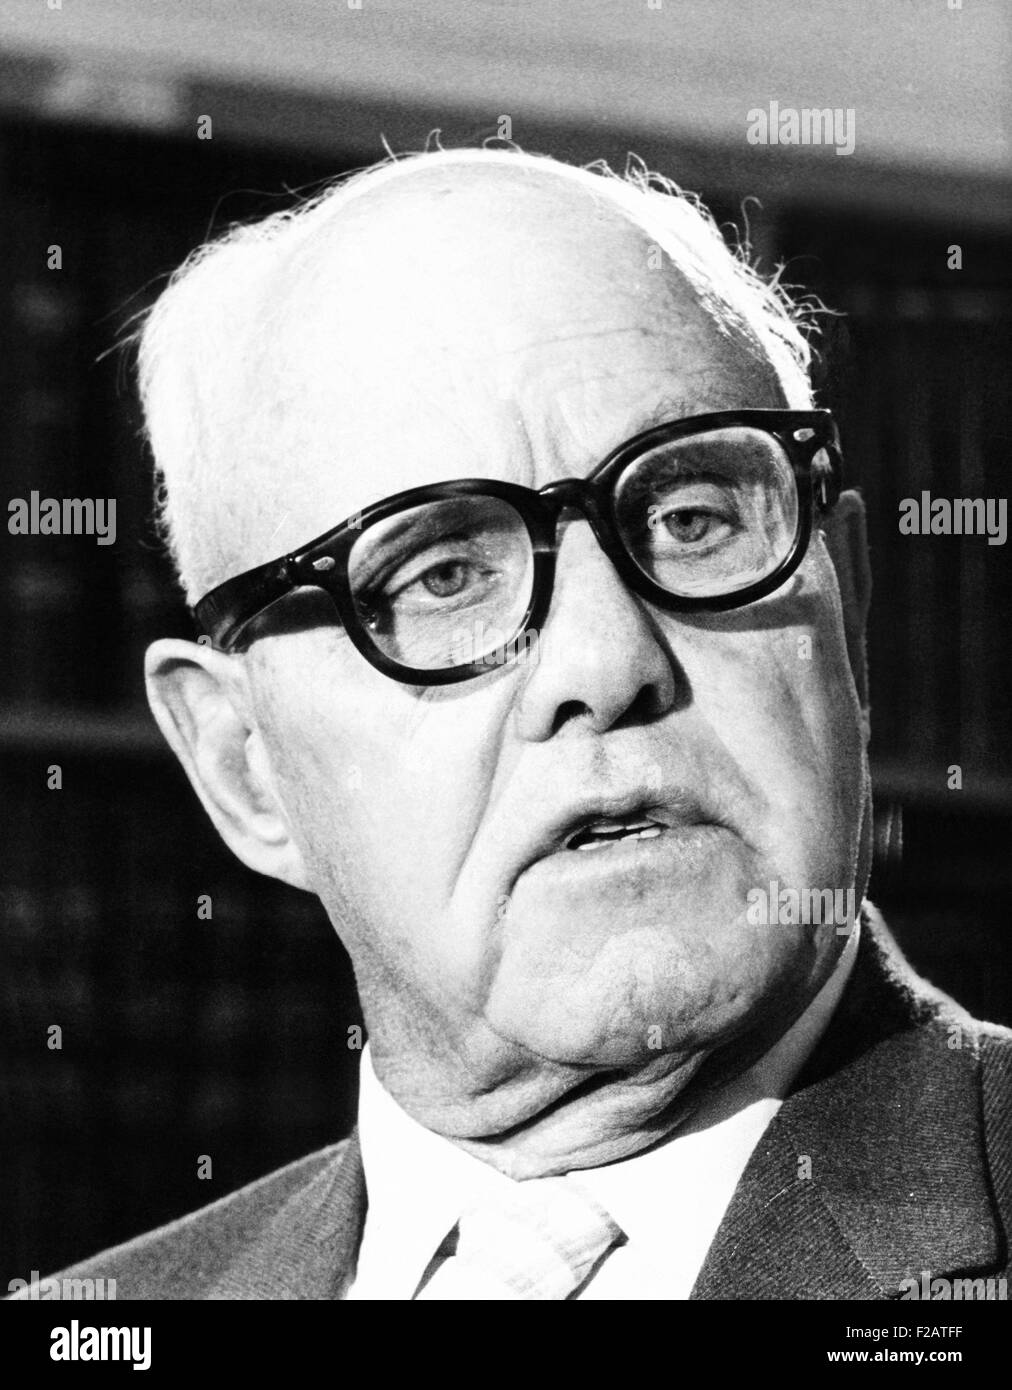 AFL-CIO president George Meany before the Senate Appropriations Committee. March 10, 1971. Meany wanted the U.S. - Stock Image